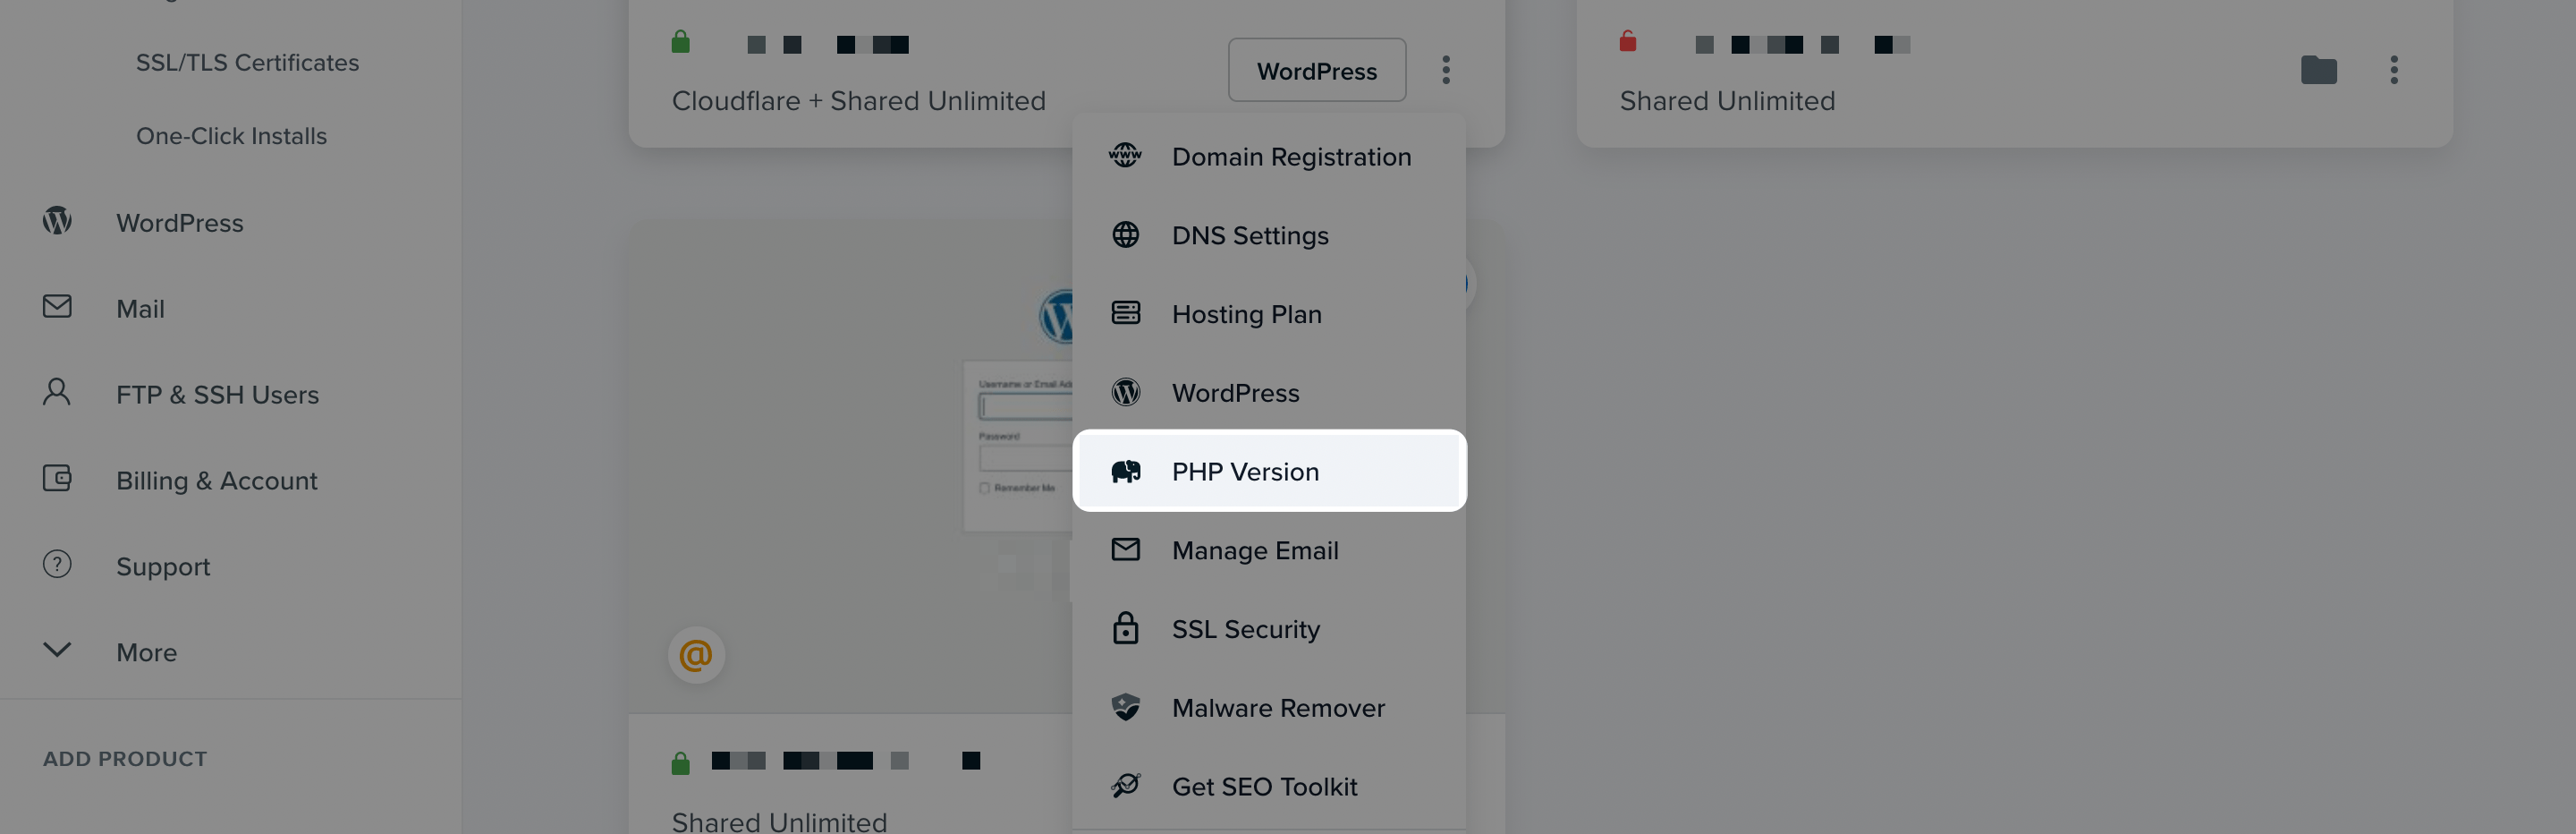 The PHP Version option within DreamHost.